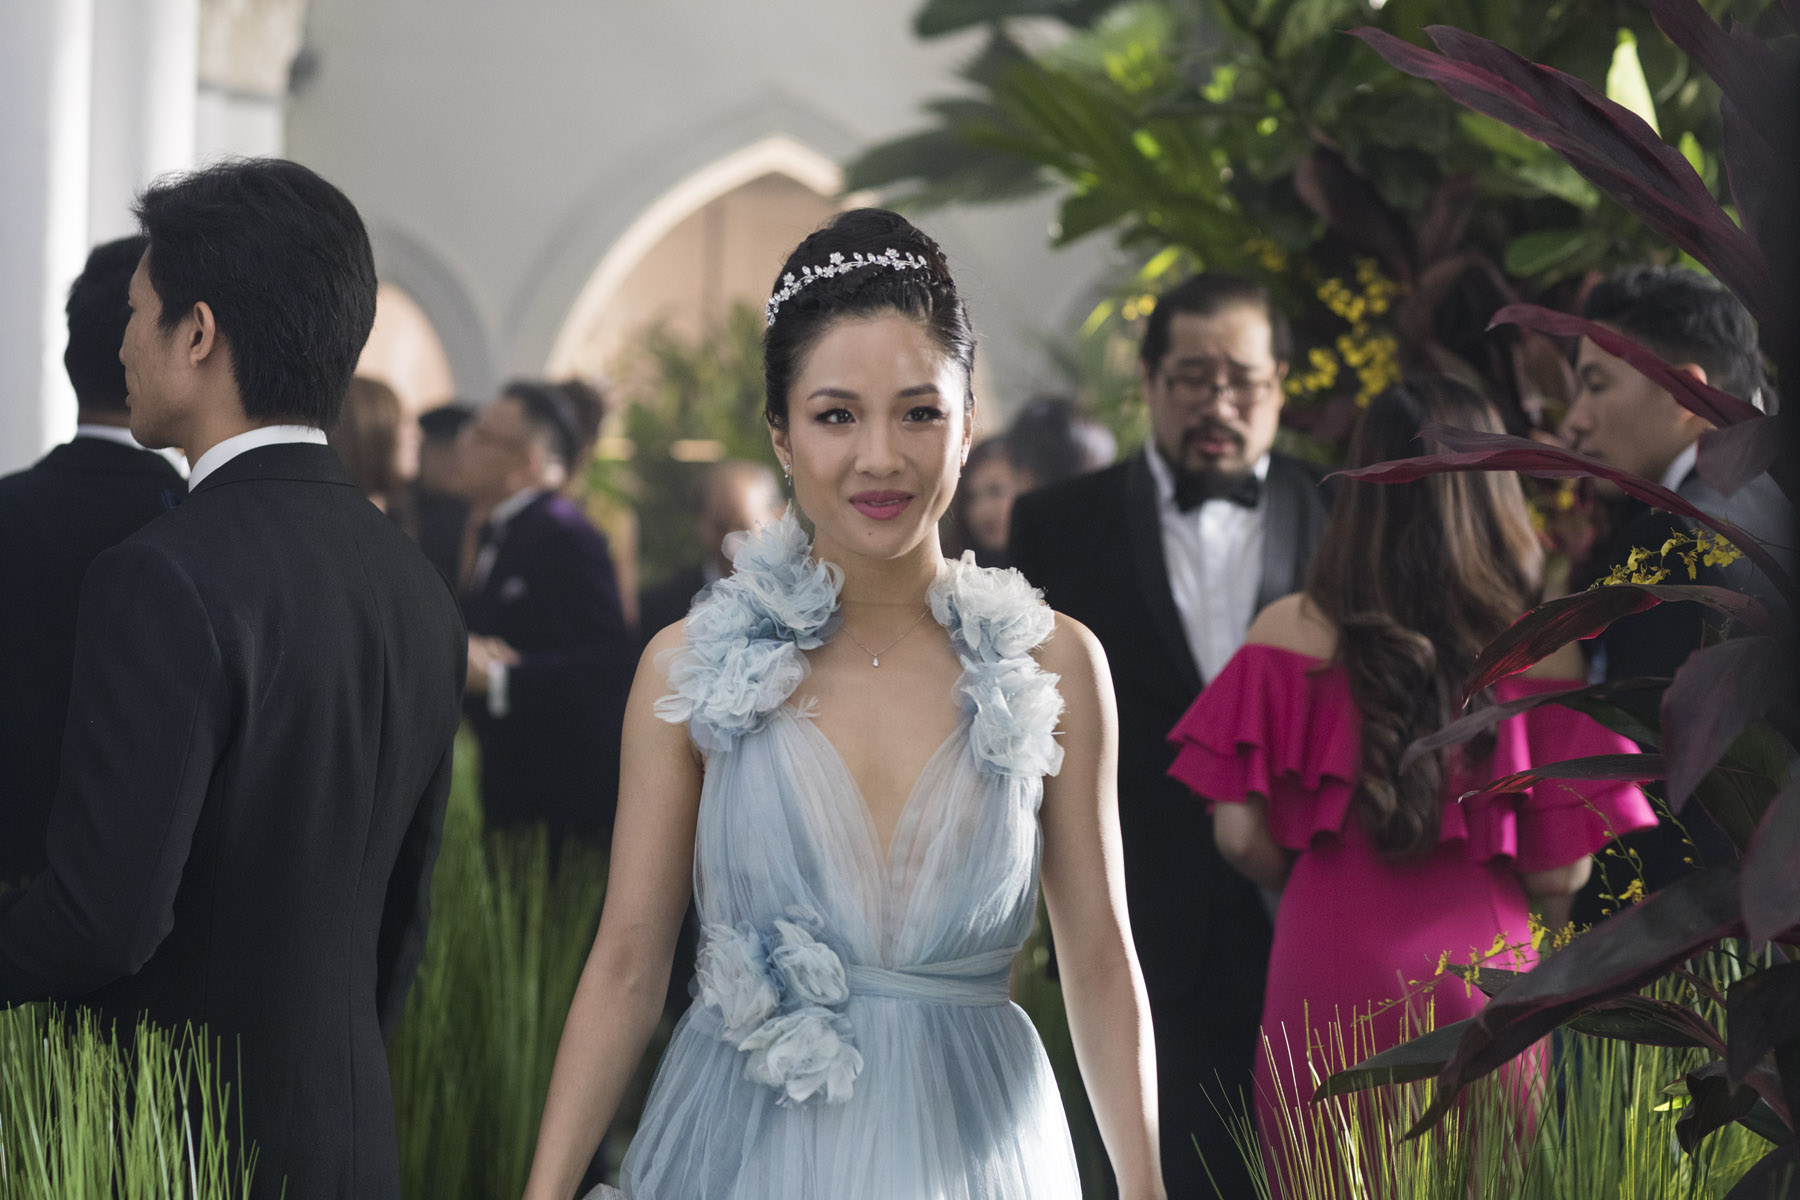 Constance Wu as Henry Golding's date for best friend's wedding in Crazy Rich Asians wedding scene